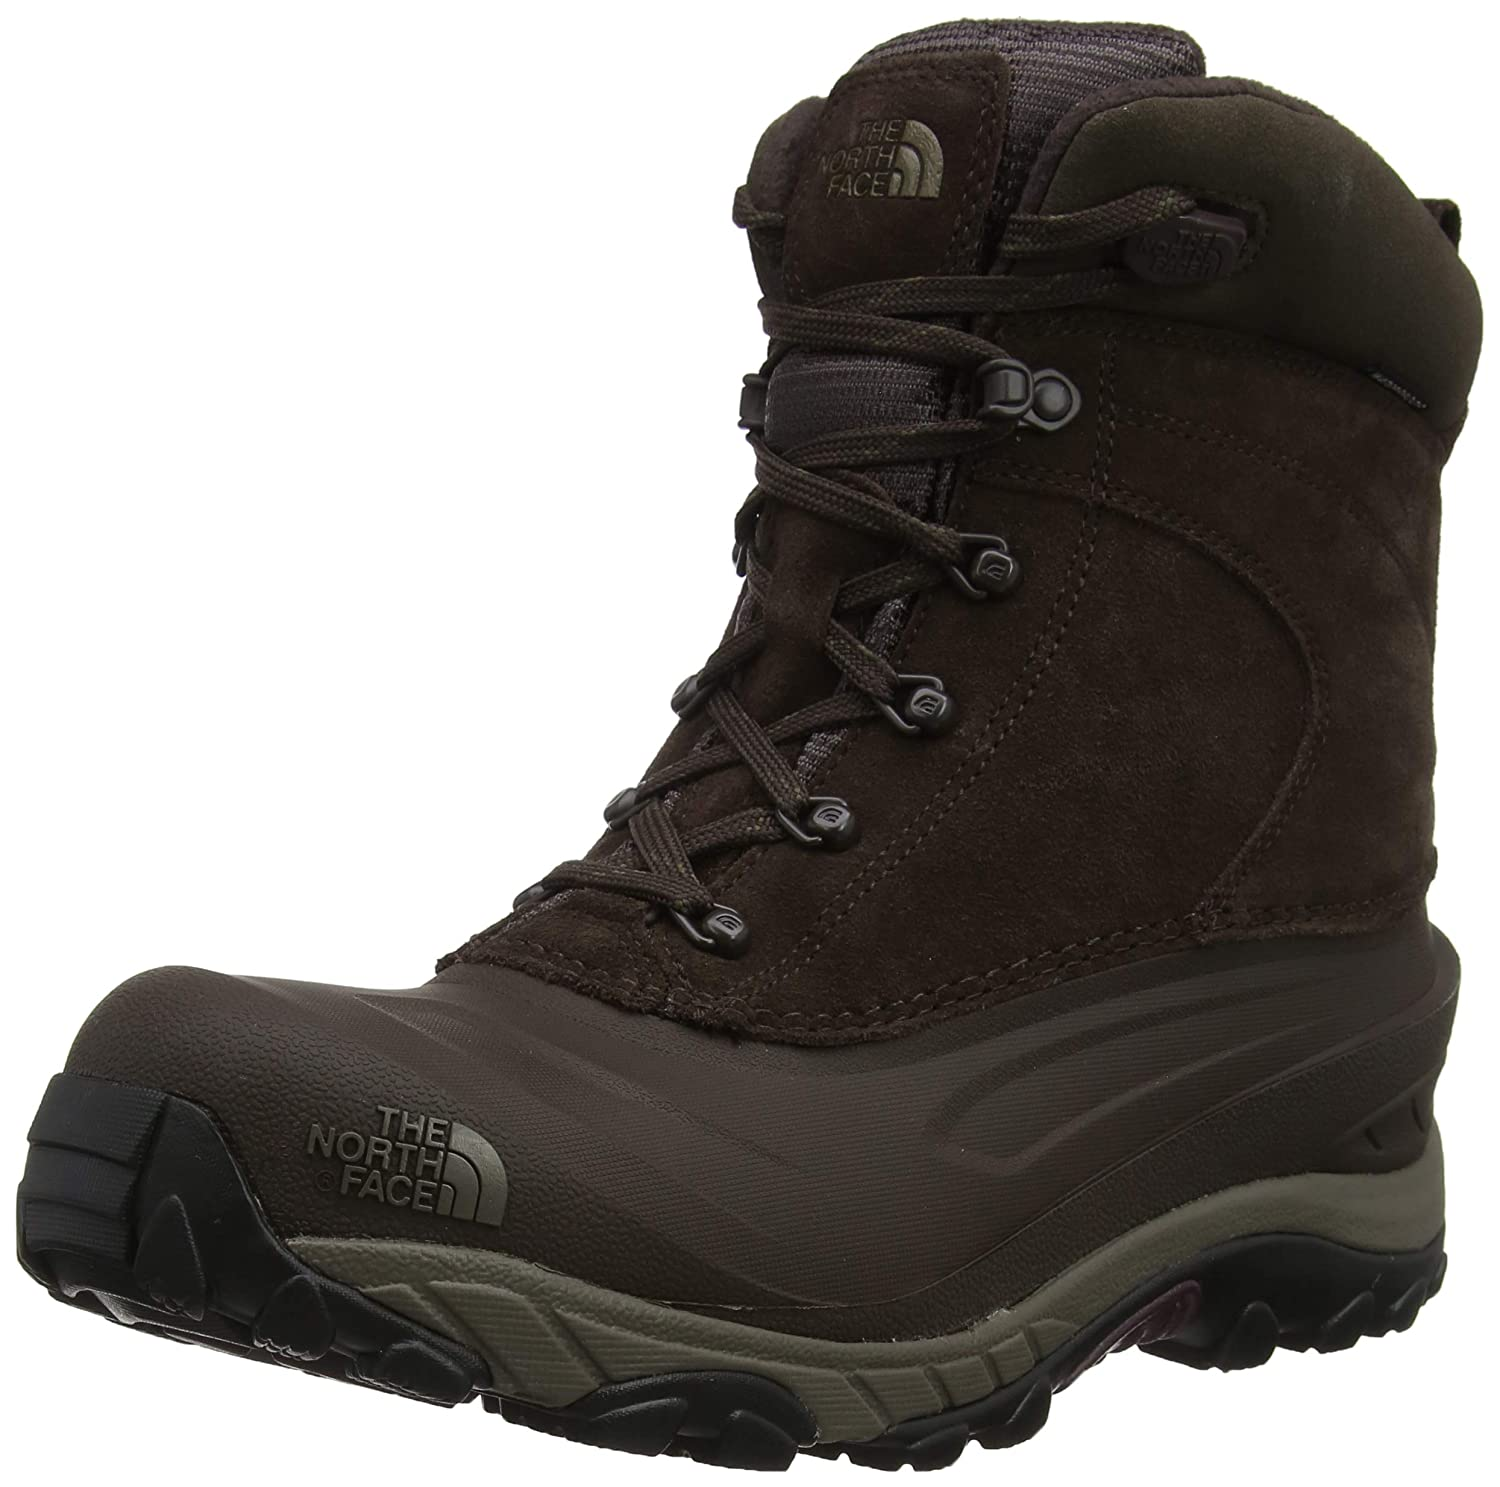 TALLA 40.5 EU. The North Face Chilkat III, Botas de Senderismo para Hombre